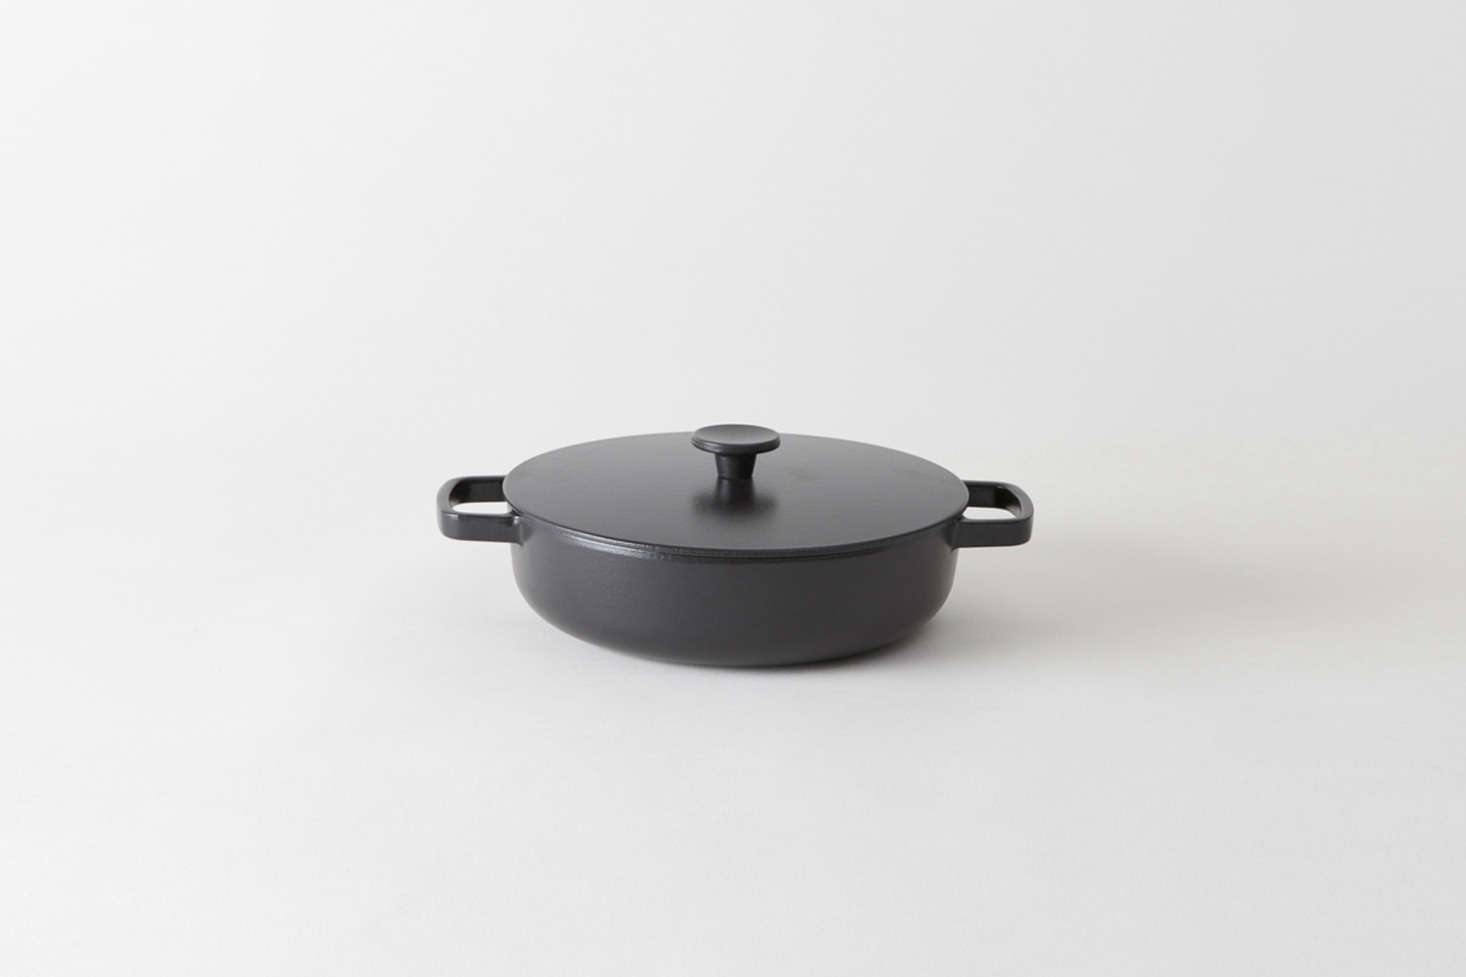 We like the cookware from British brand Crane whose cast iron pans are finished with matte black enamel inside and out. Free of cadmium, lead, PFOA, and PTFE, the enamel-finished cast iron is resistance to thermal shocks and scratches. Shown here is the Crane Cookware Frying Pan ($5) available along with the Crane Cookware Saute Pan ($